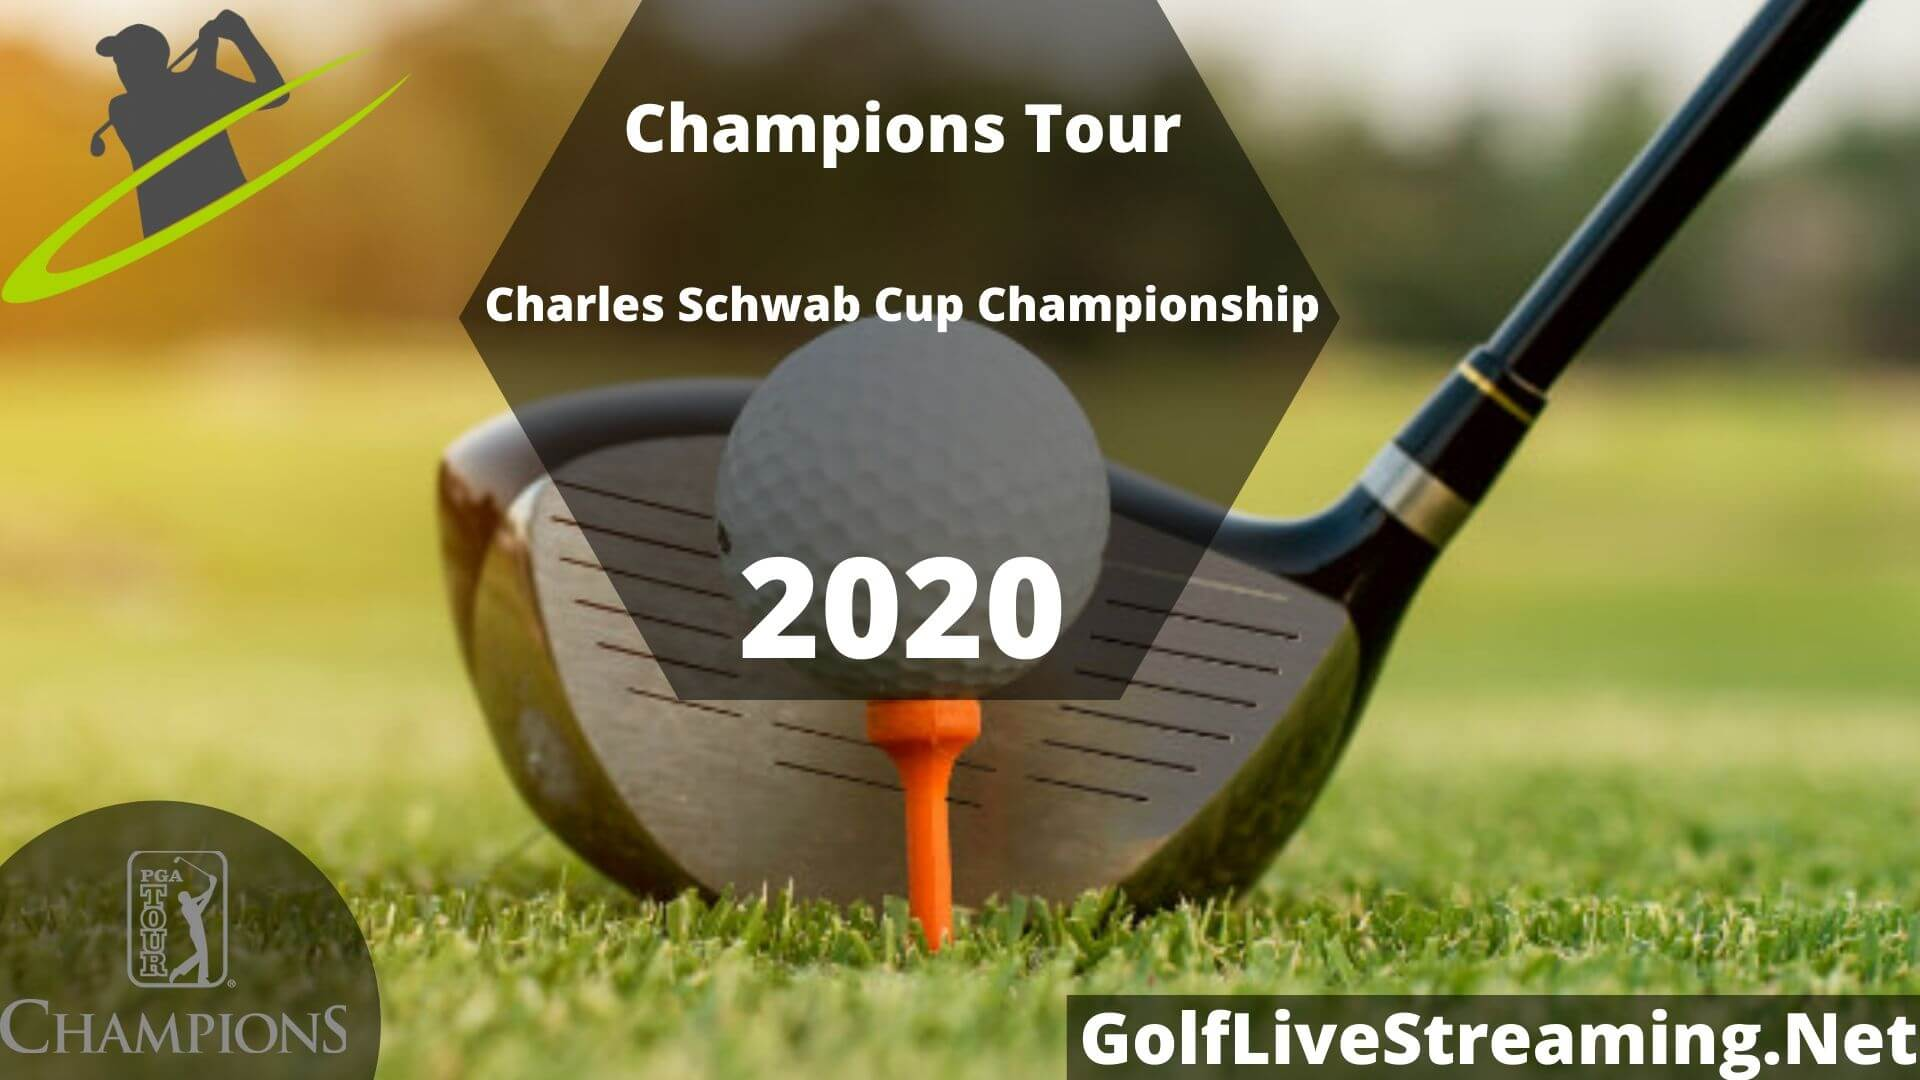 Charles Schwab Cup Championship Live Stream 2020 | Champions Tour Round 4